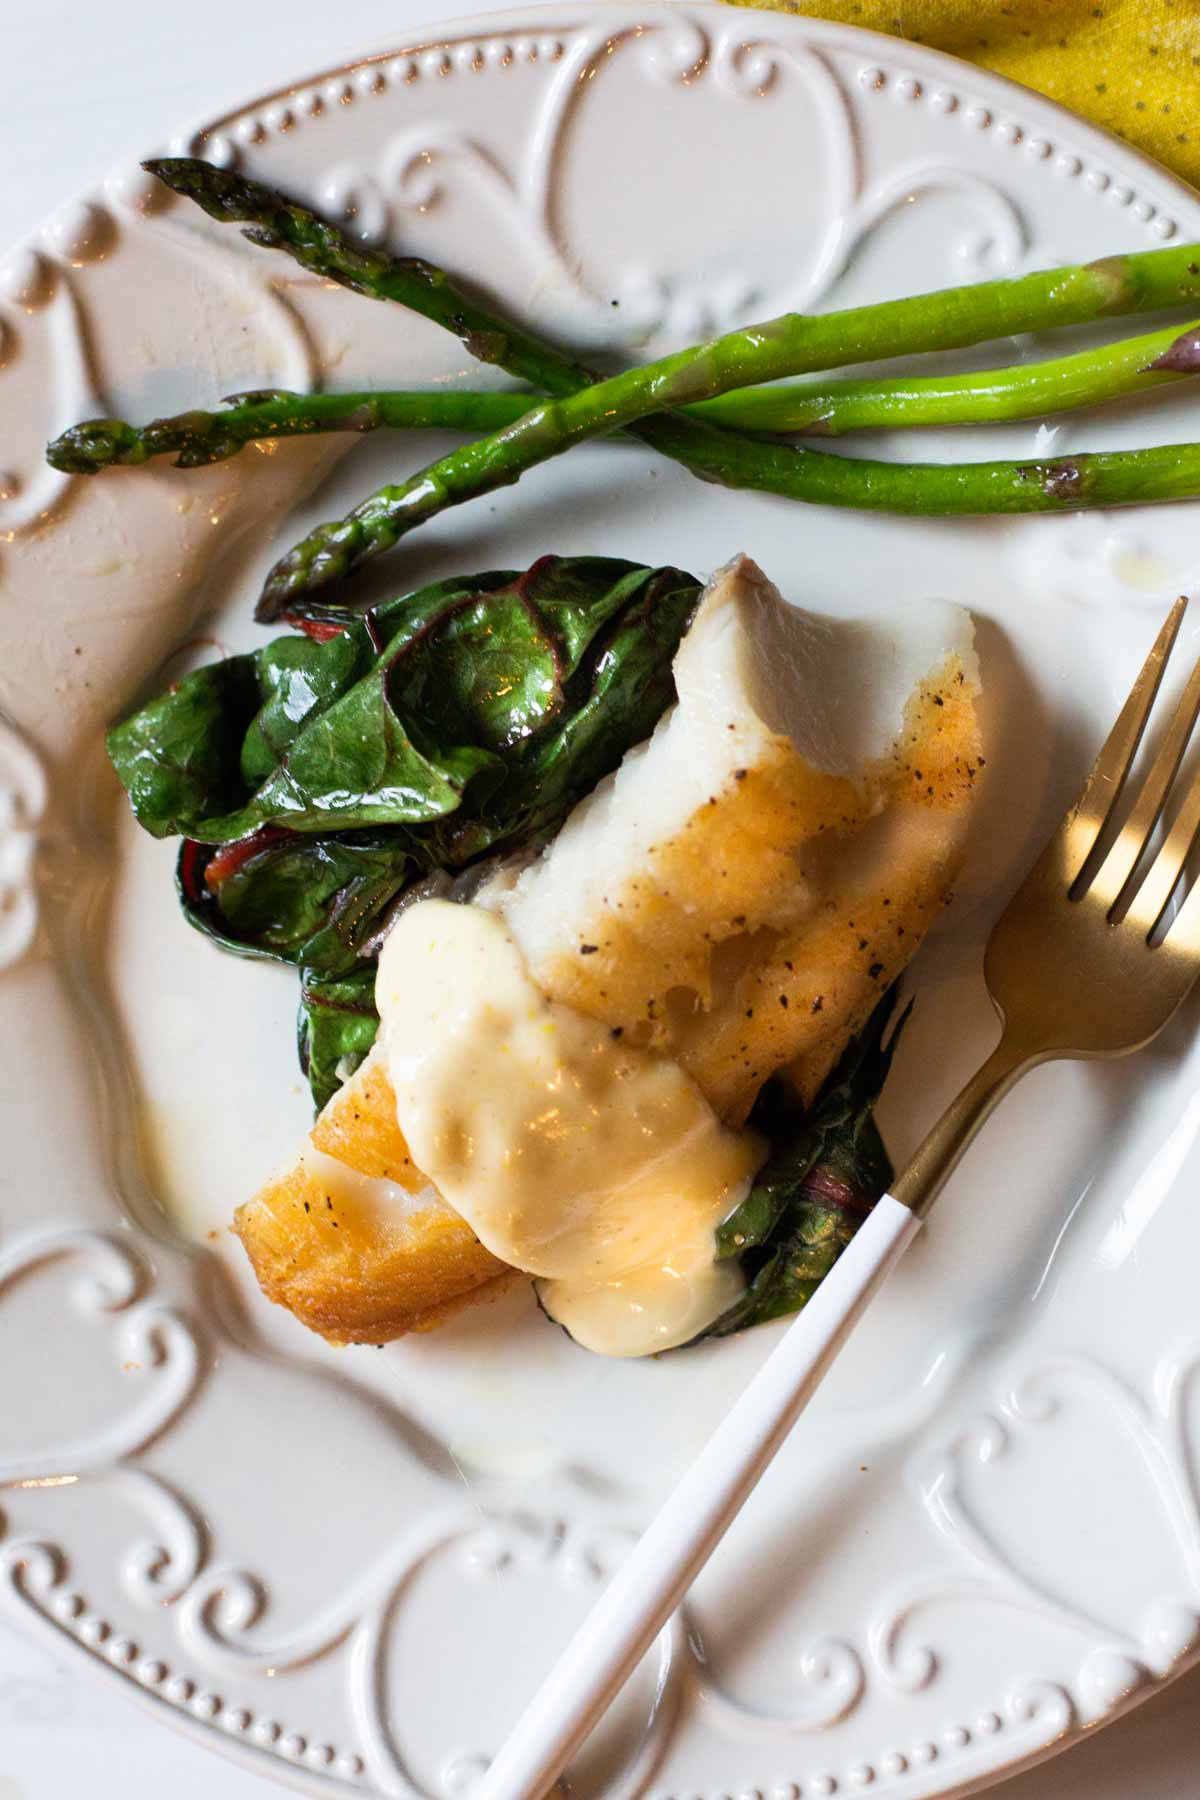 Ling cod recipe pan seared and served with lemon aioli and swiss chard